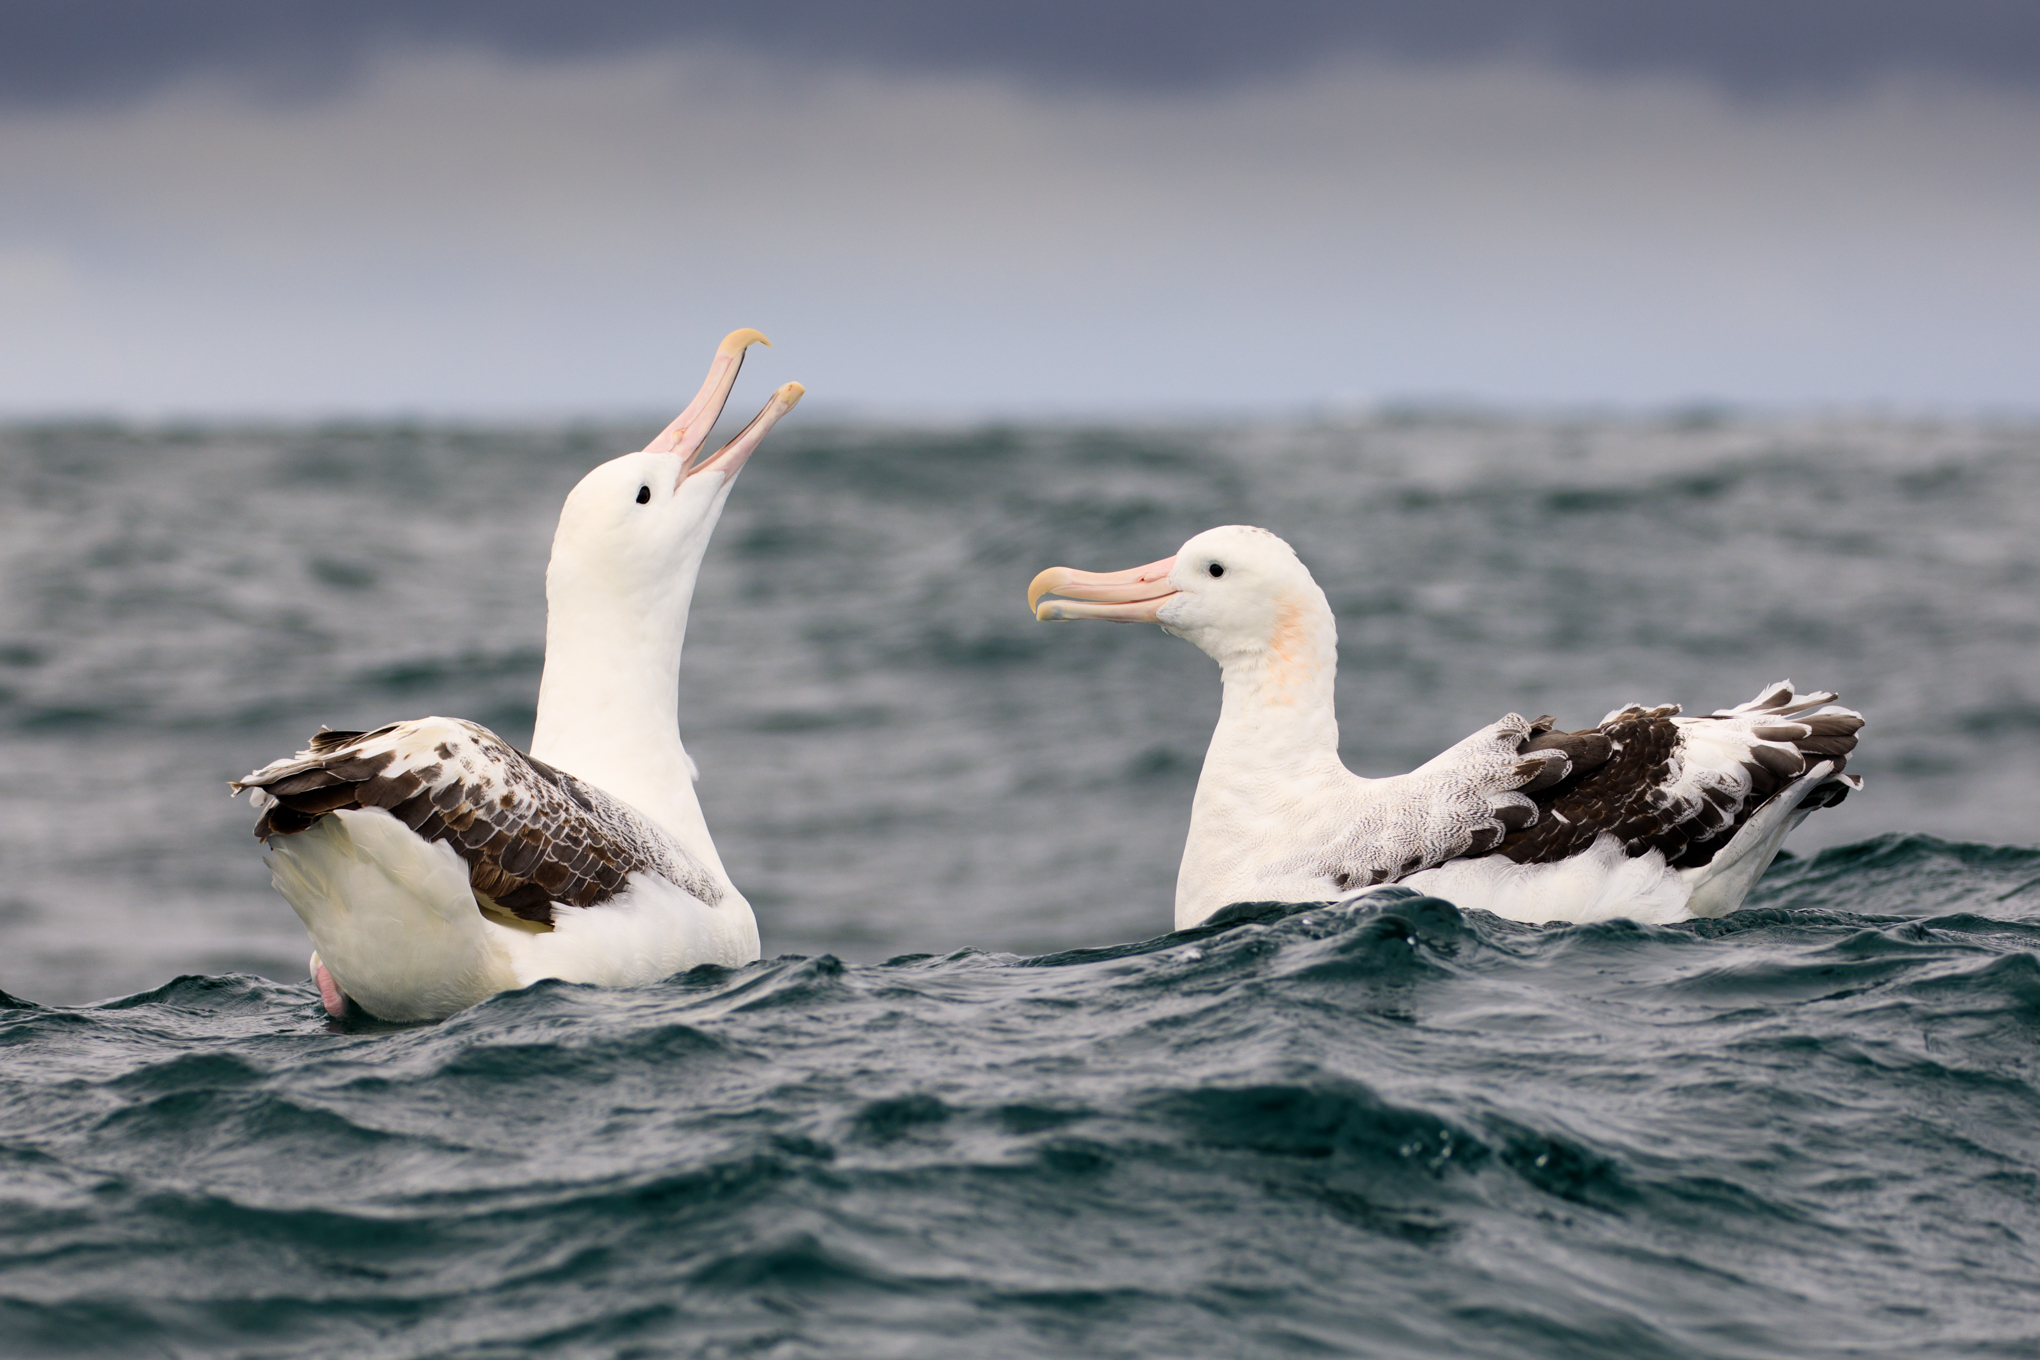 Southern Royal and Gibson's Wandering Albatross having a chat